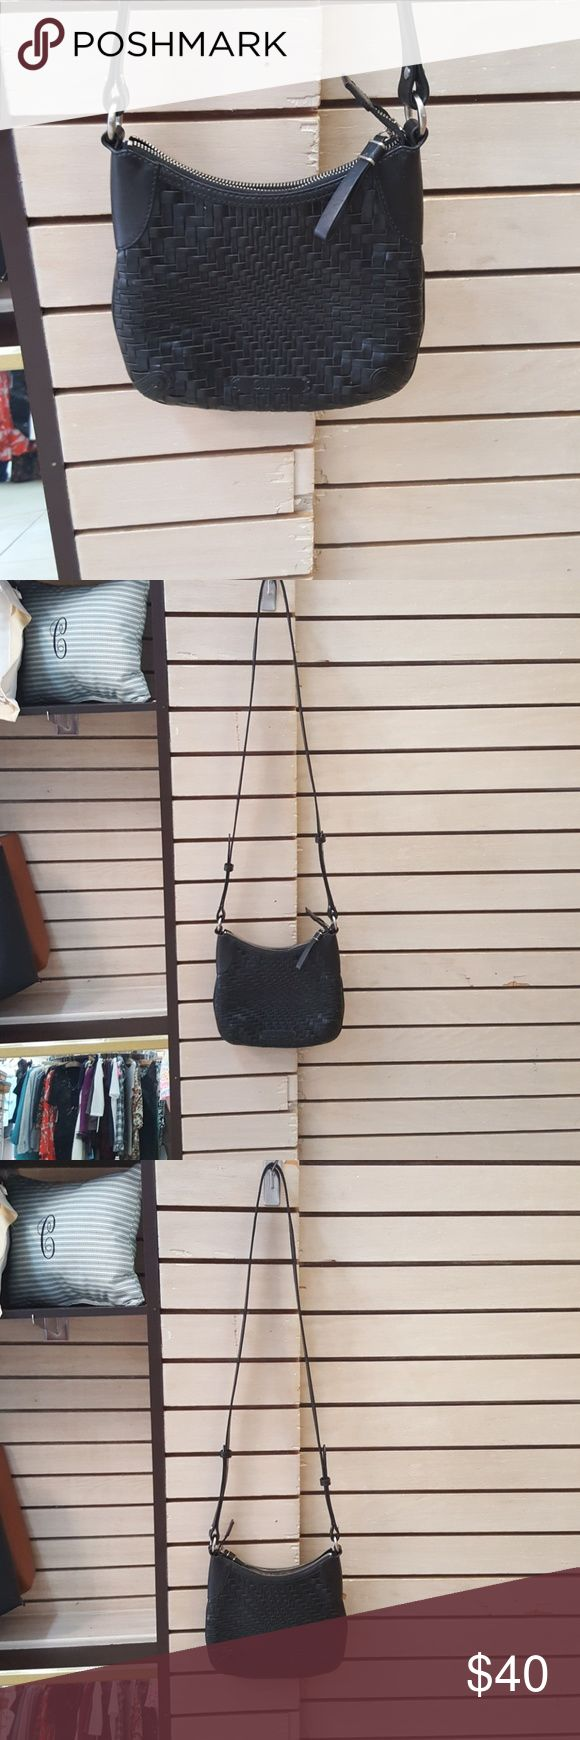 New Cole Haan Purse Cute leather crossbody purse, this was a display model in our retail store, never owned but no tags attached, great compartments inside with key chain attachment, GREAT DEAL!!! Cole Haan Bags Crossbody Bags